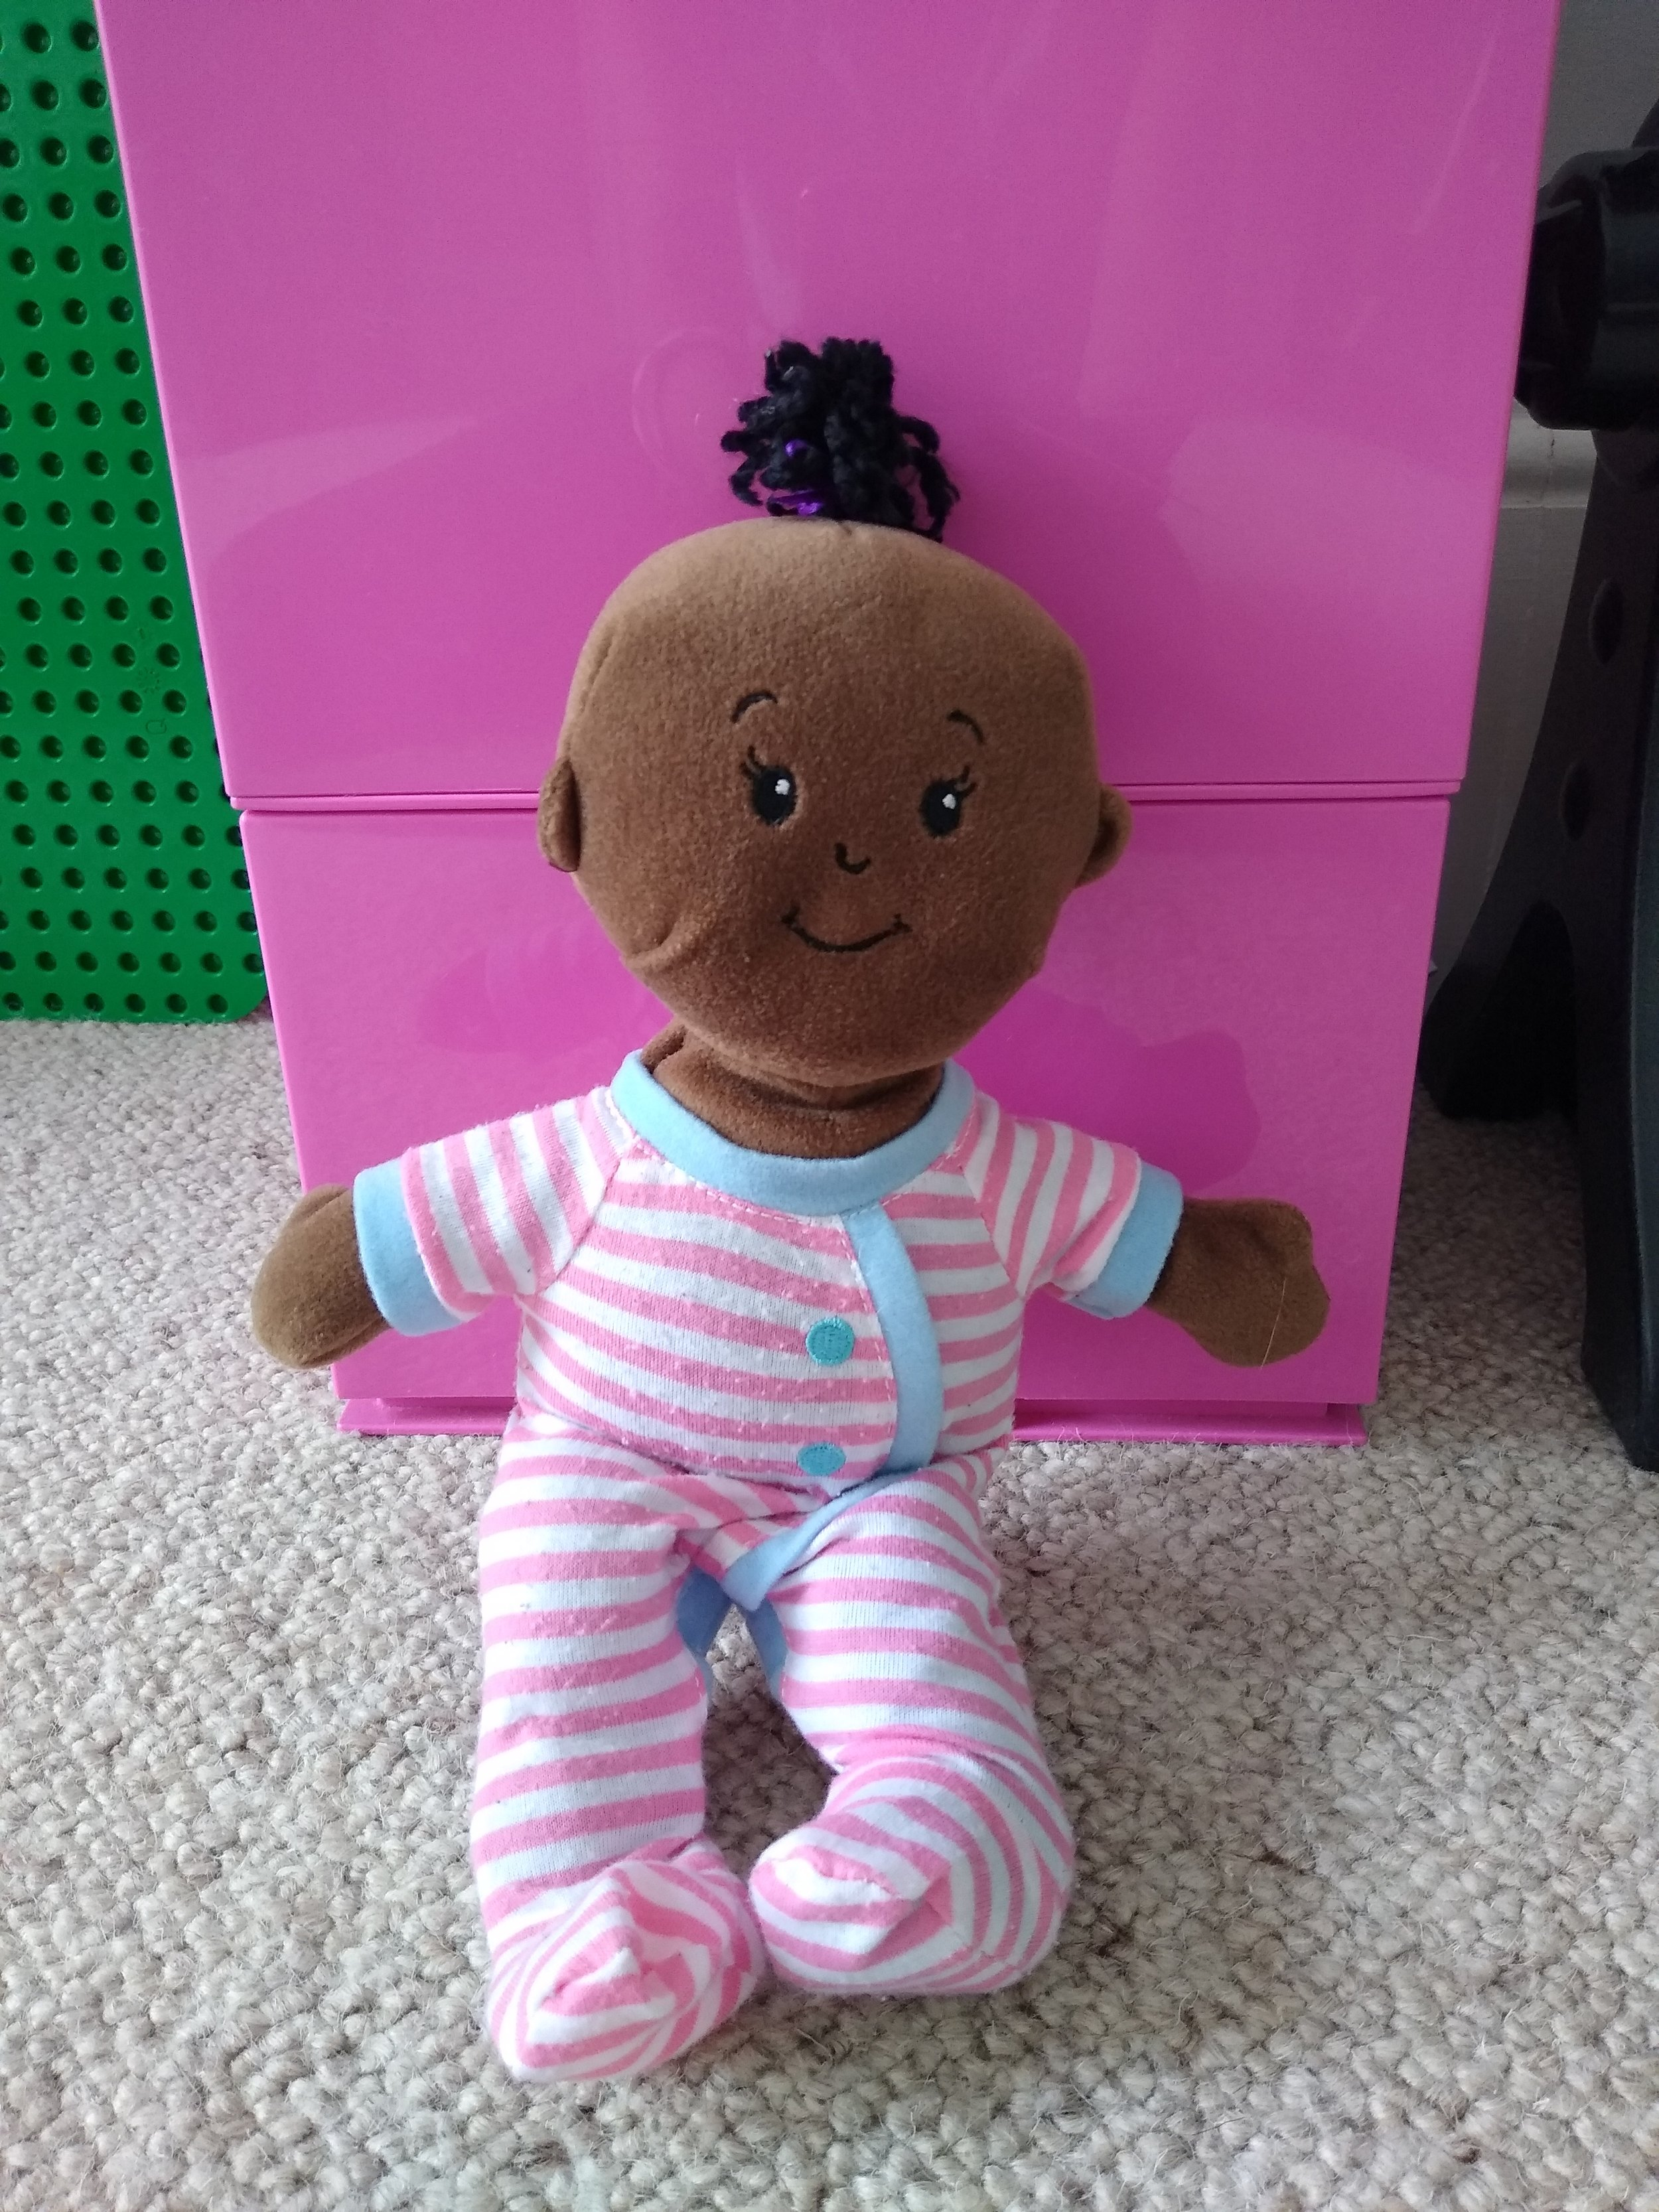 The offending doll.